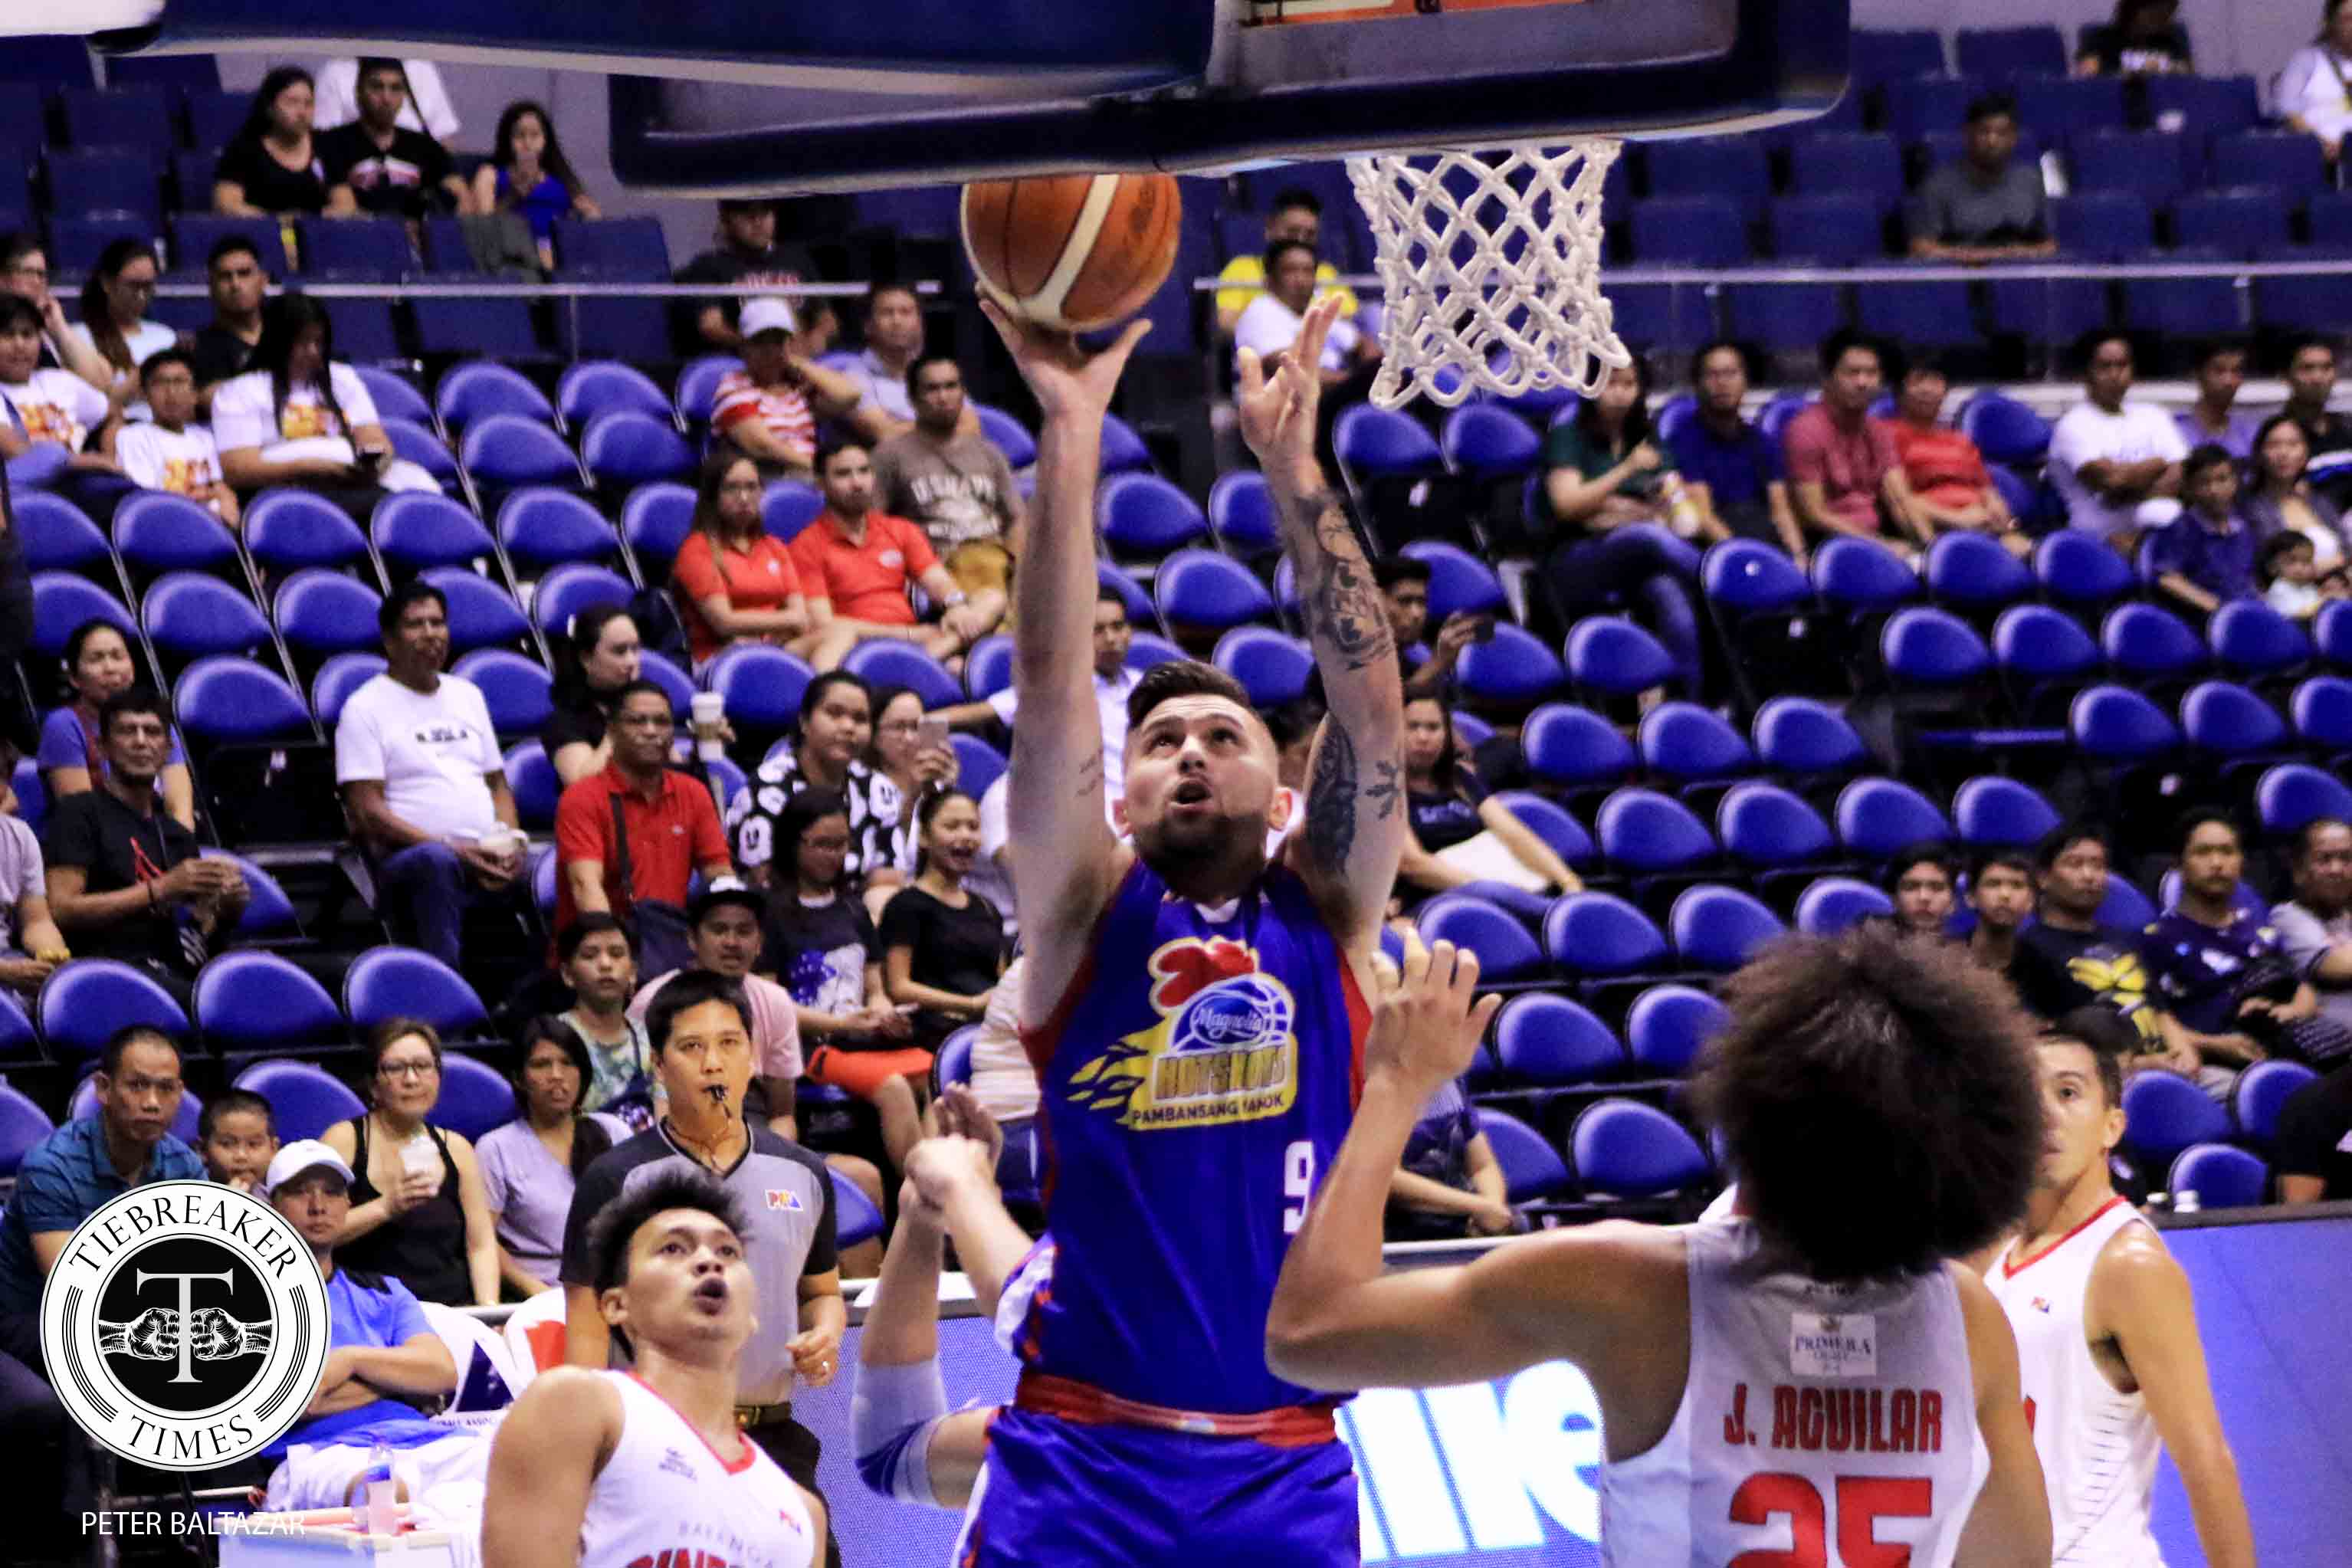 Tiebreaker Times Robbie Herndon makes sure that Magnolia's conference doesn't end Basketball News PBA  Robbie Herndon PBA Season 44 Magnolia Hotshots 2019 PBA Philippine Cup